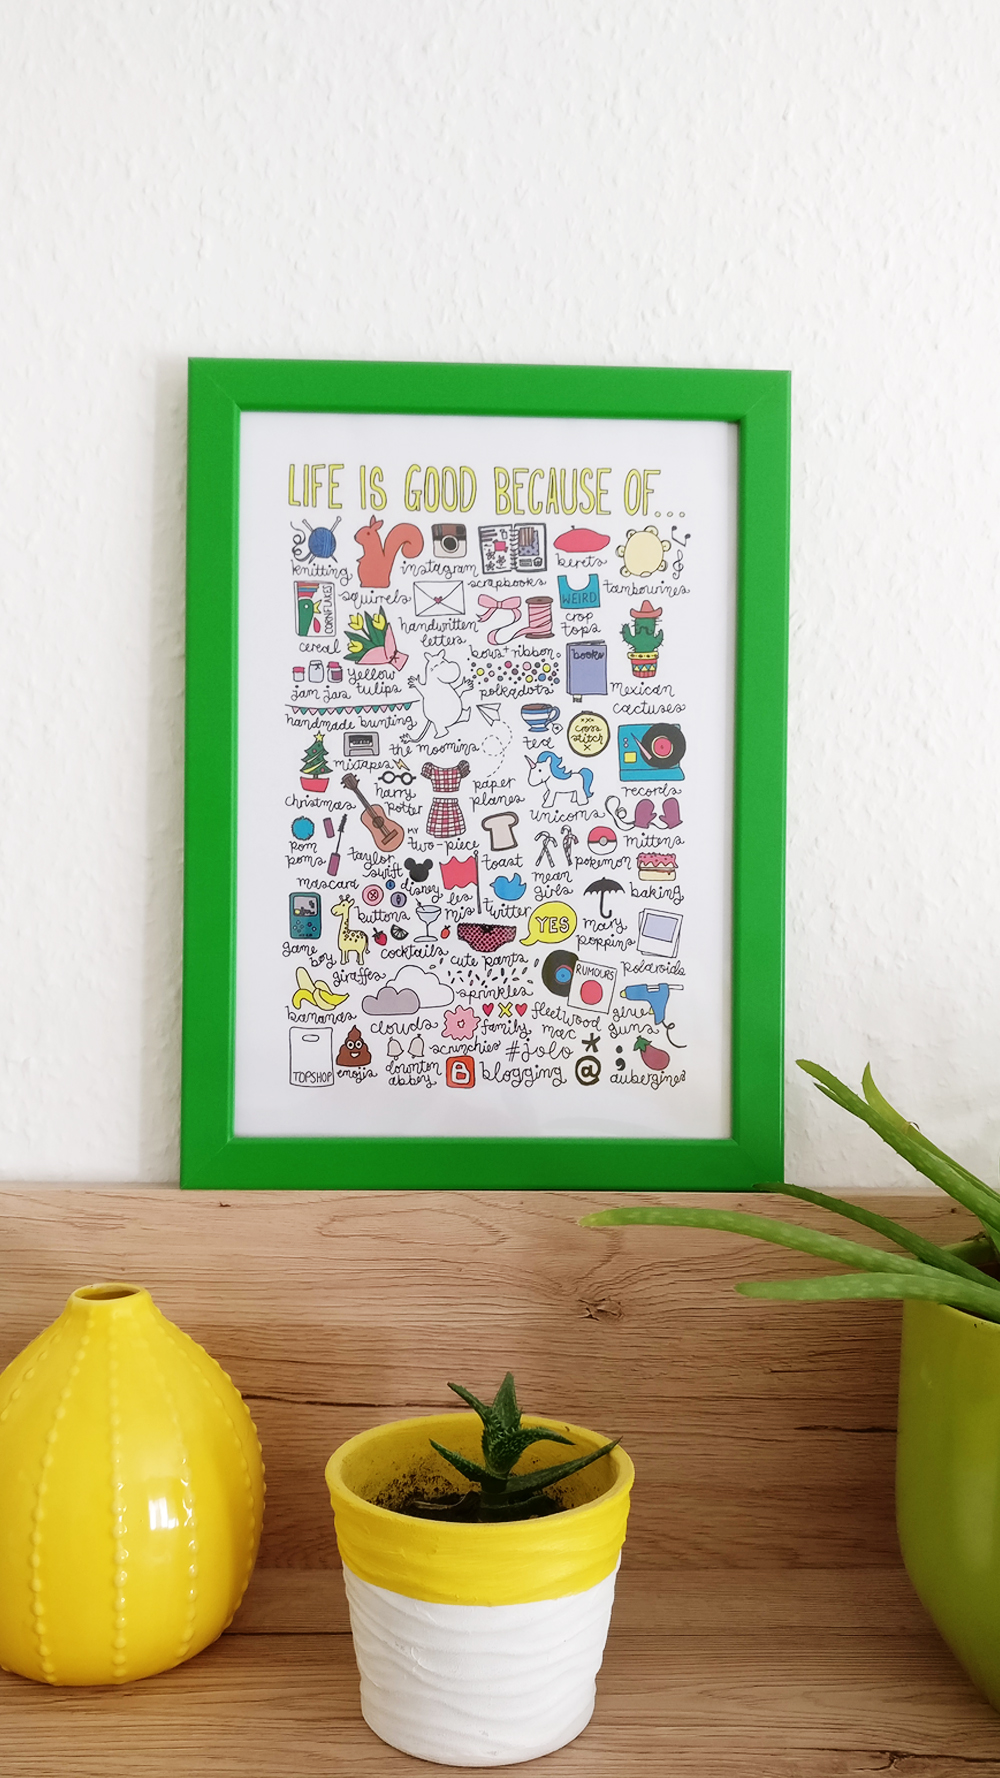 Easy tricks to decorate your walls on budget - Life is good